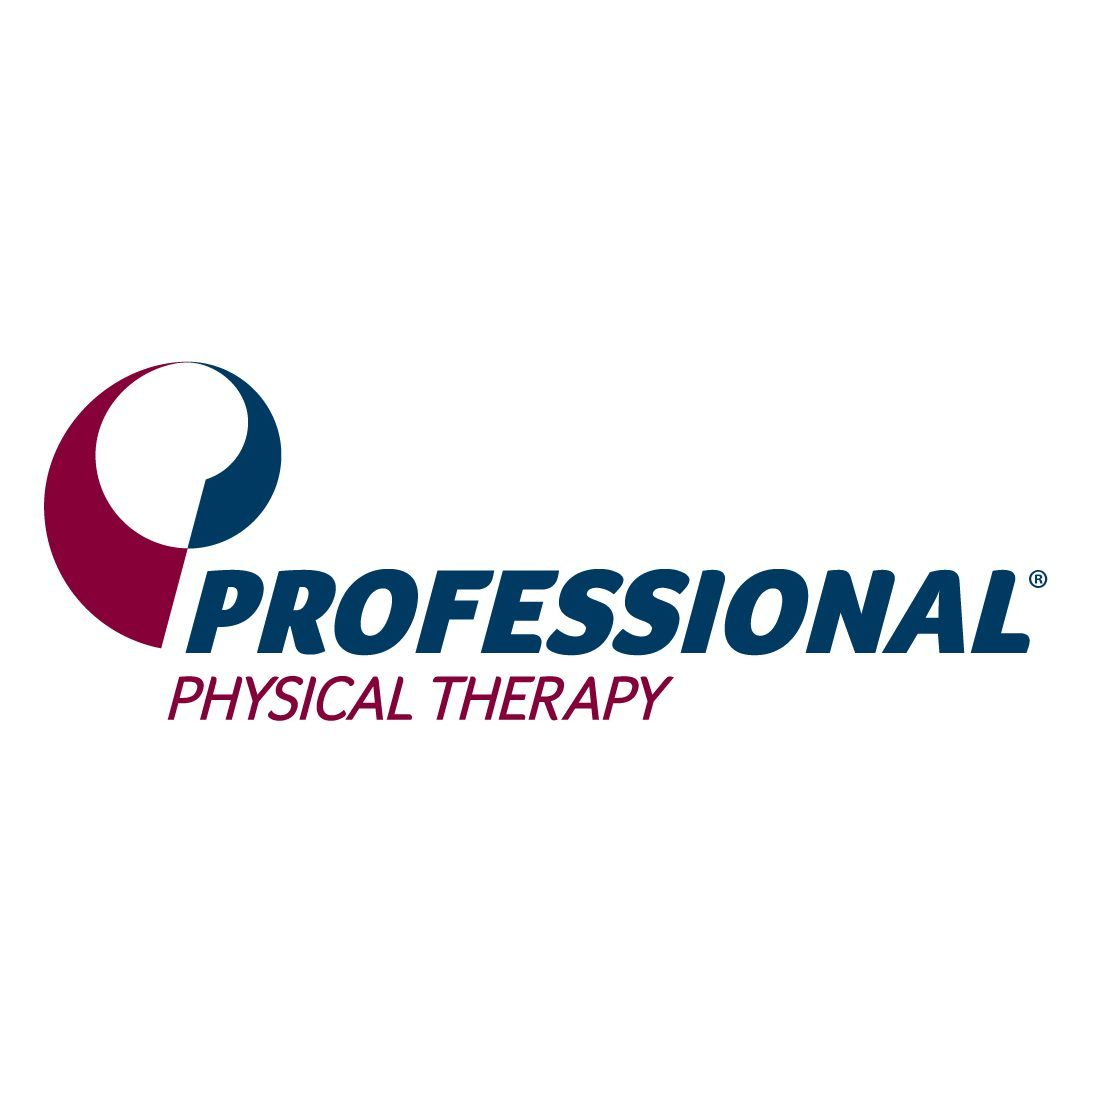 Professional Physical Therapy image 14